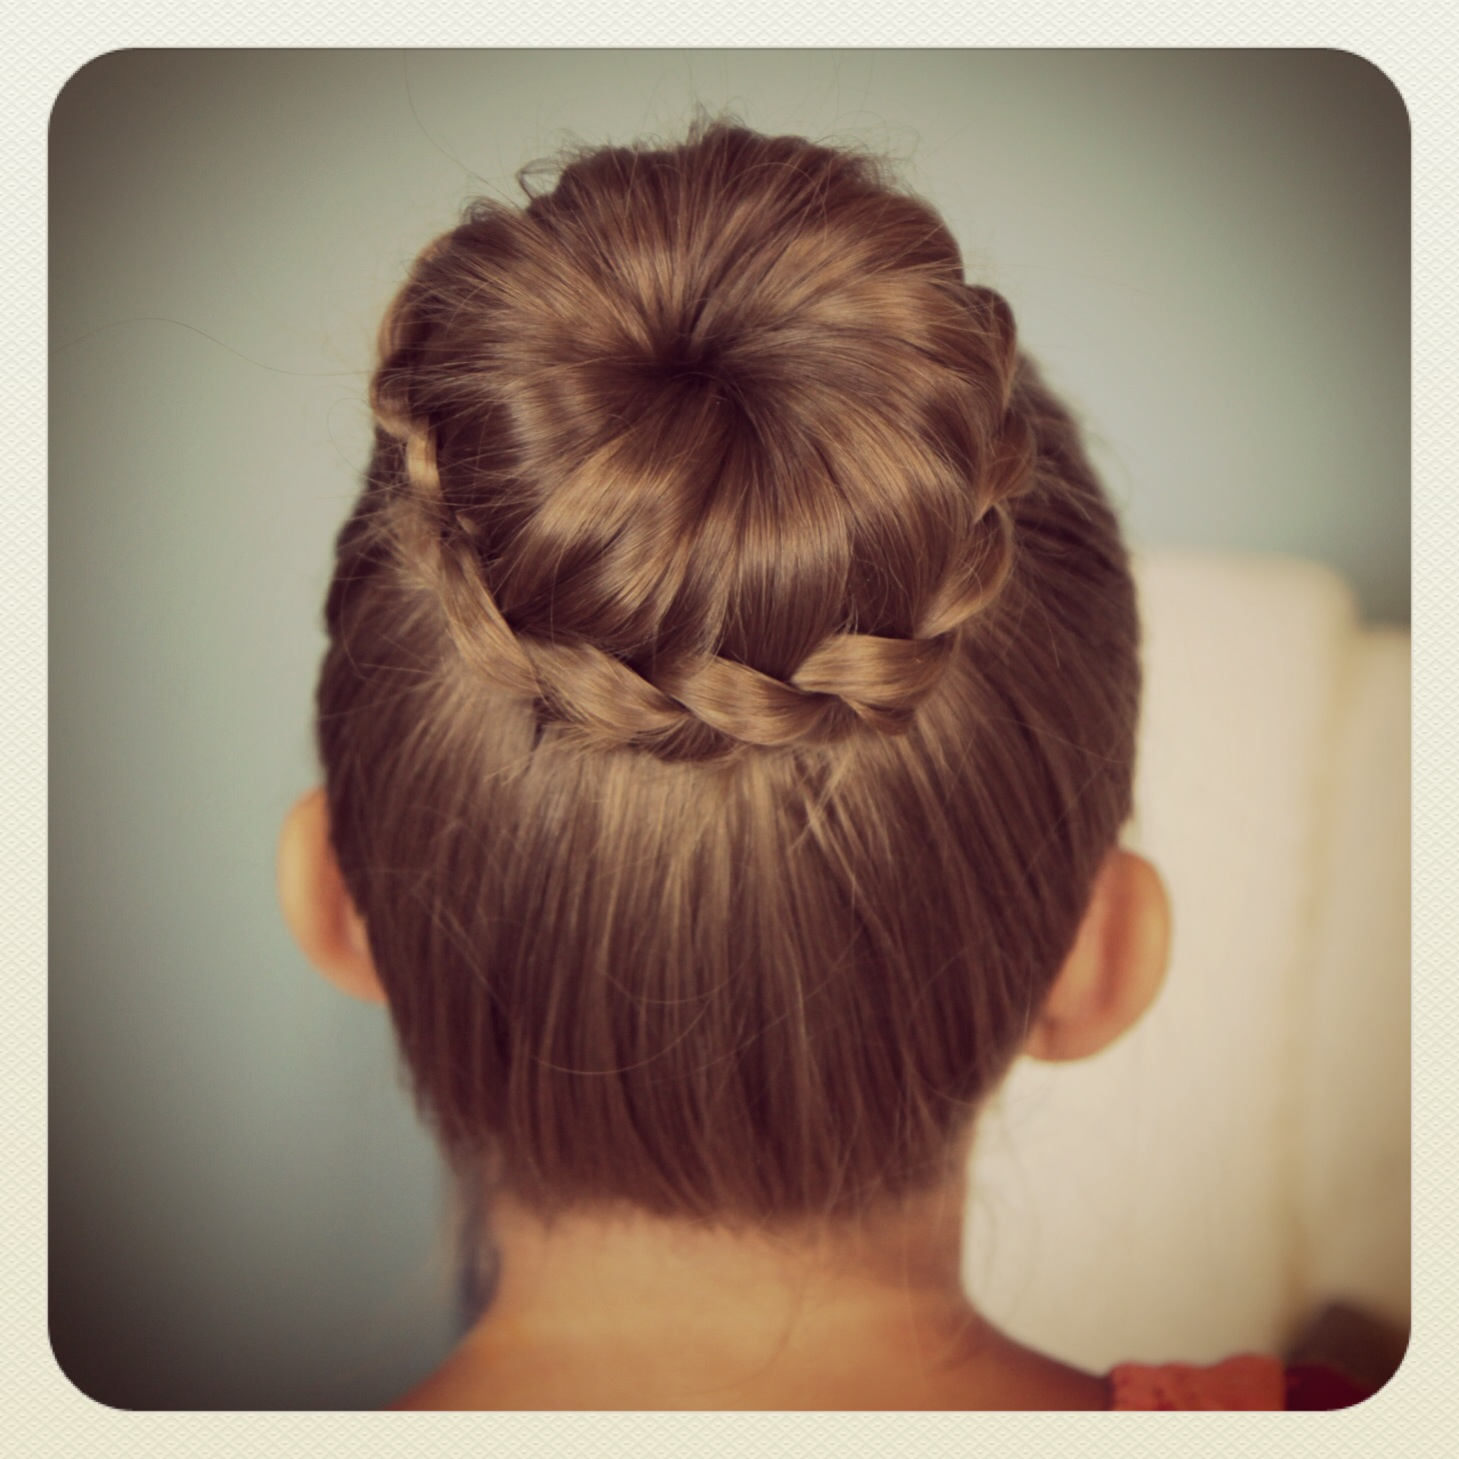 Cute Braided Bun Hairstyles For Short Hair : Lace braided bun cute updo hairstyles girls